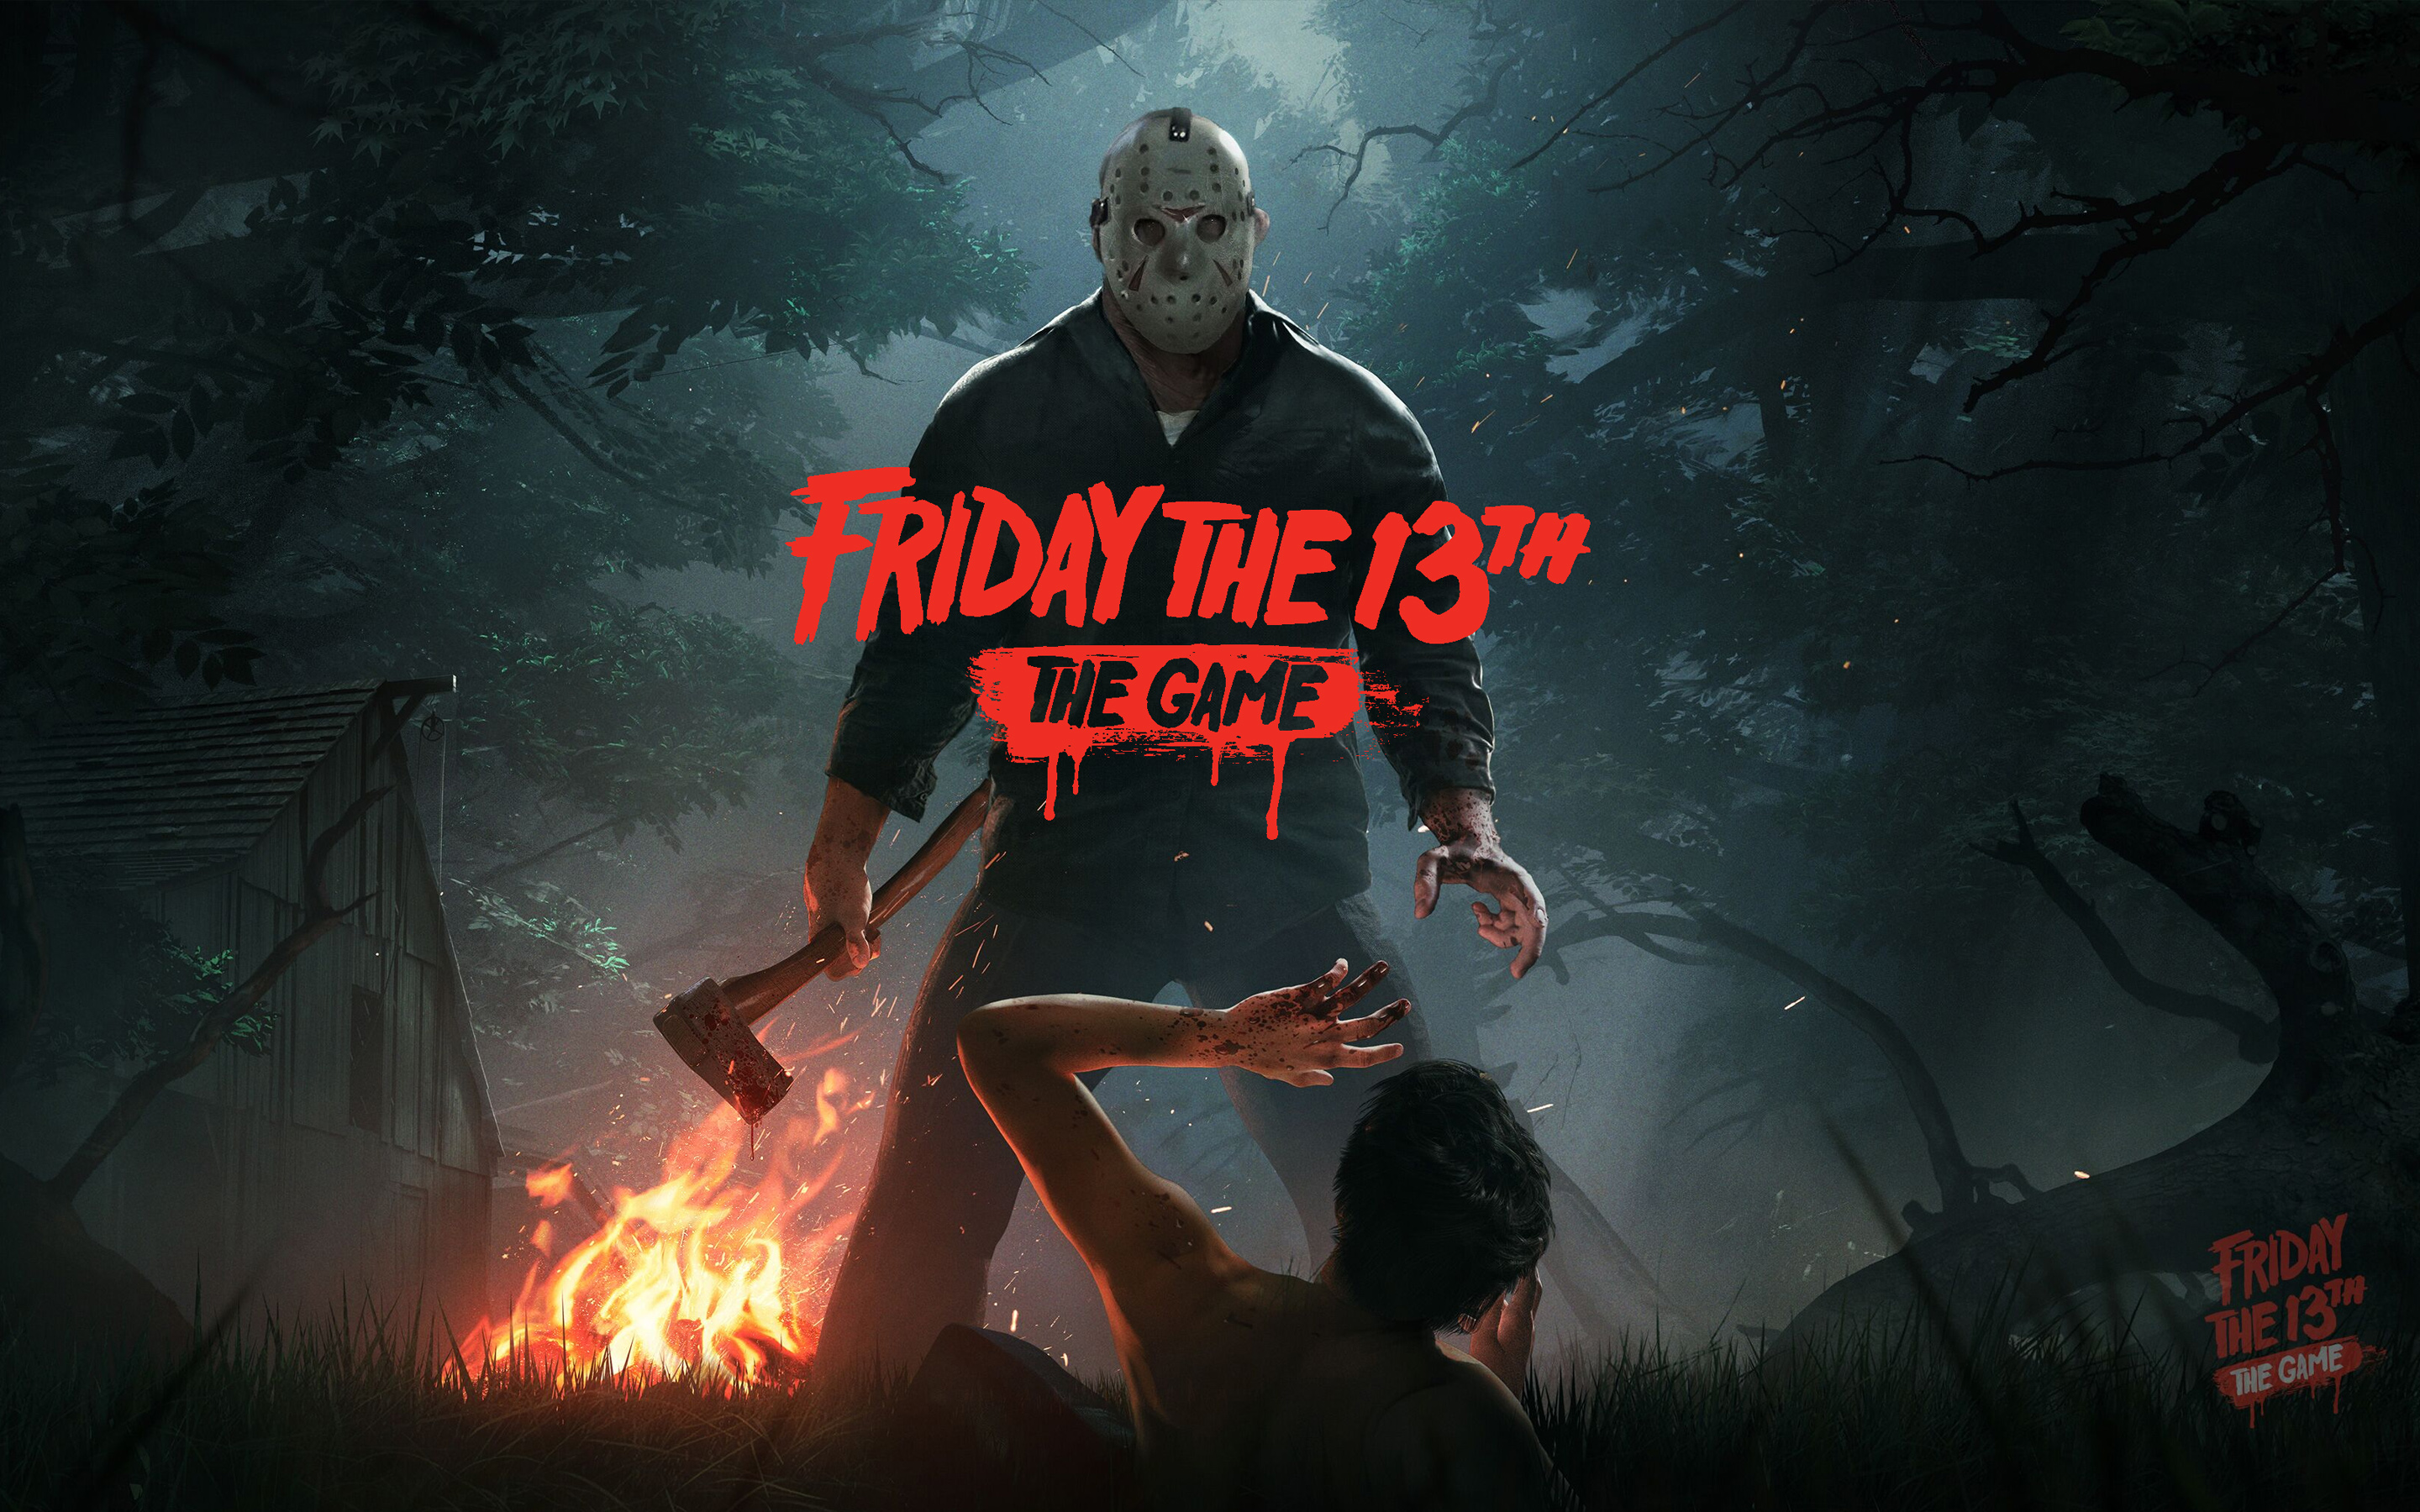 Friday The 13th The Game Wallpapers | HD Wallpapers